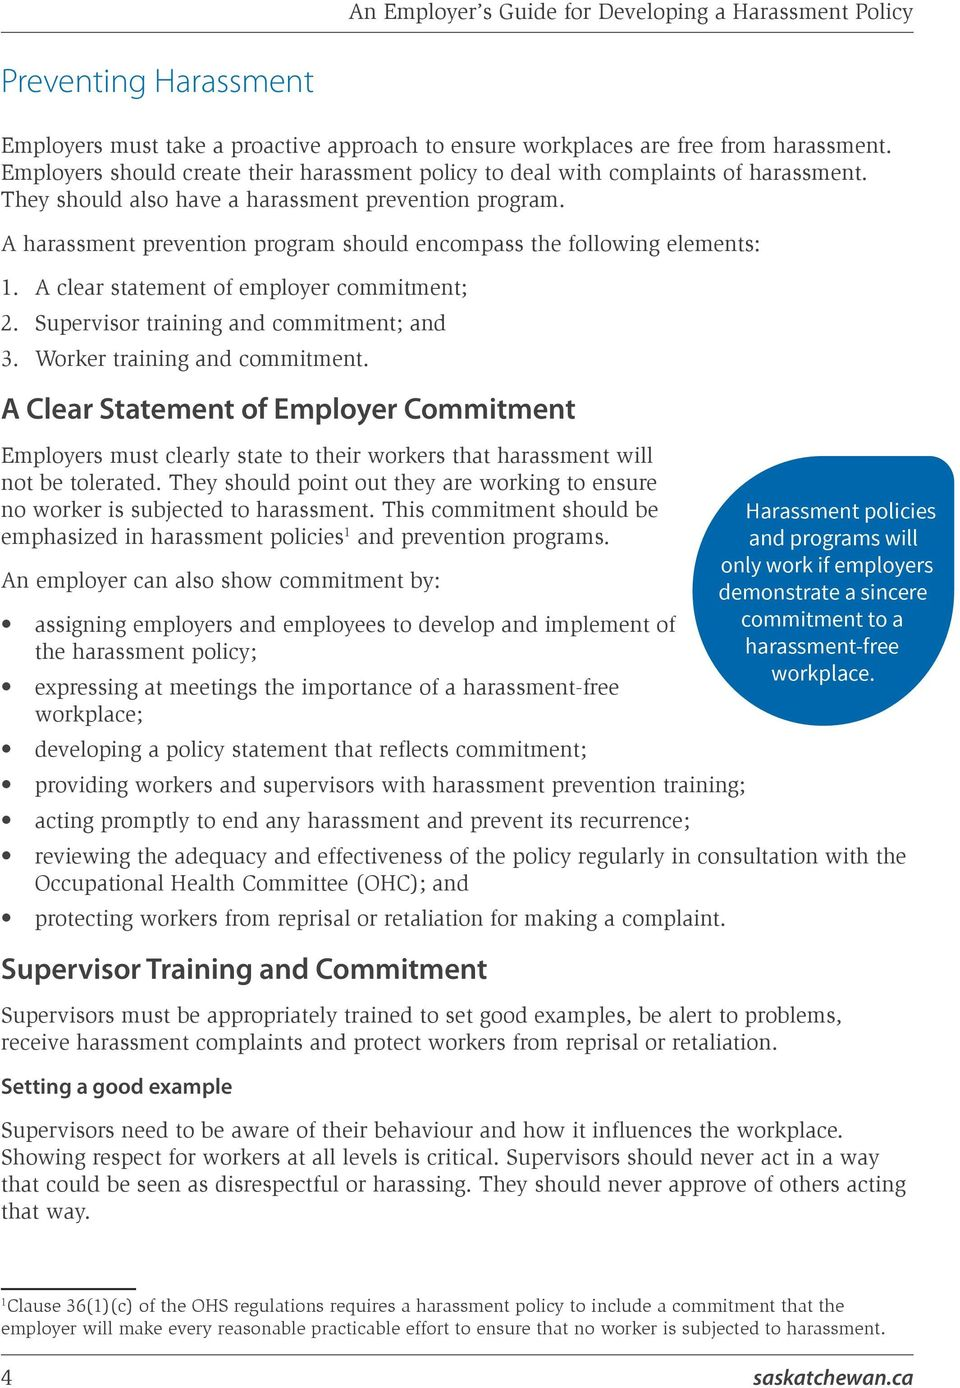 A harassment prevention program should encompass the following elements: 1. A clear statement of employer commitment; 2. Supervisor training and commitment; and 3. Worker training and commitment.